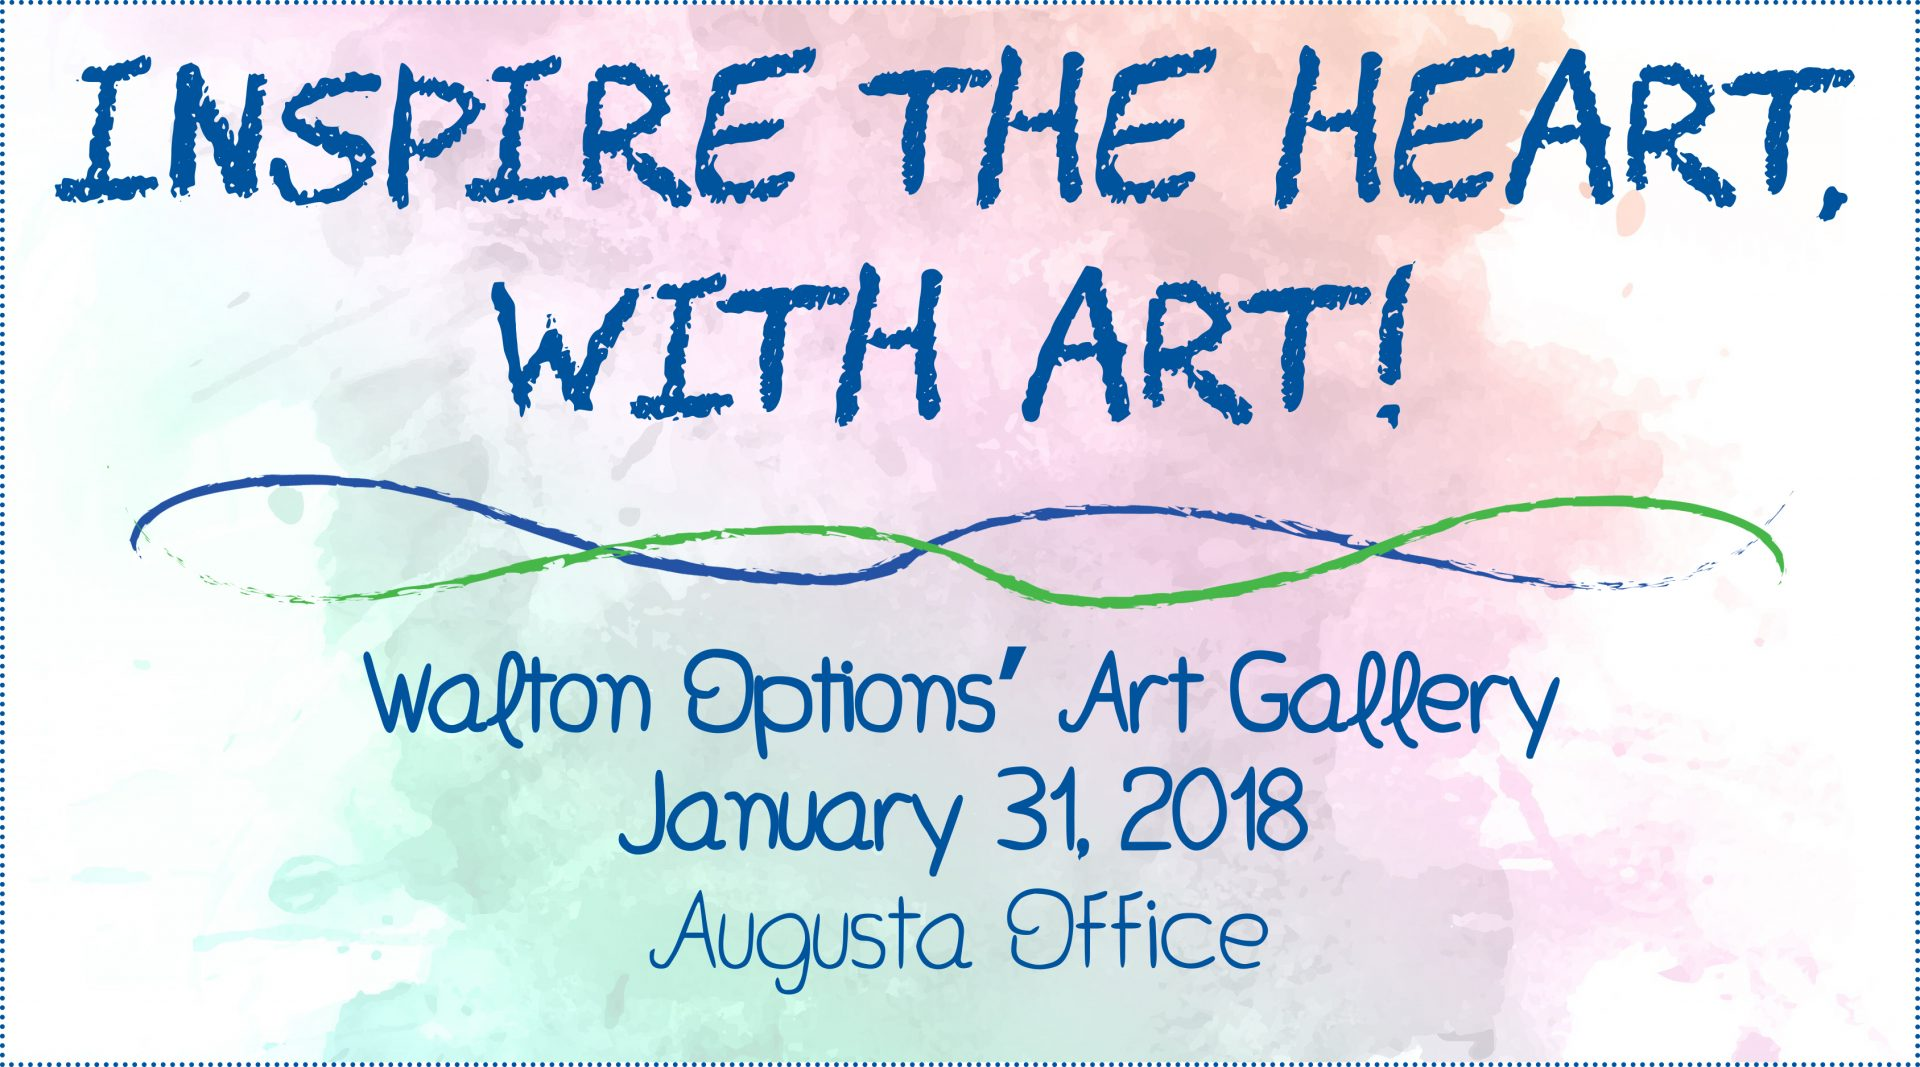 Graphic: background that looks like watercolor multi-colored paint with blue text: Help us inspire the heart, with art! Walton Options Art Gallery, January 31, 2018, Augusta Office